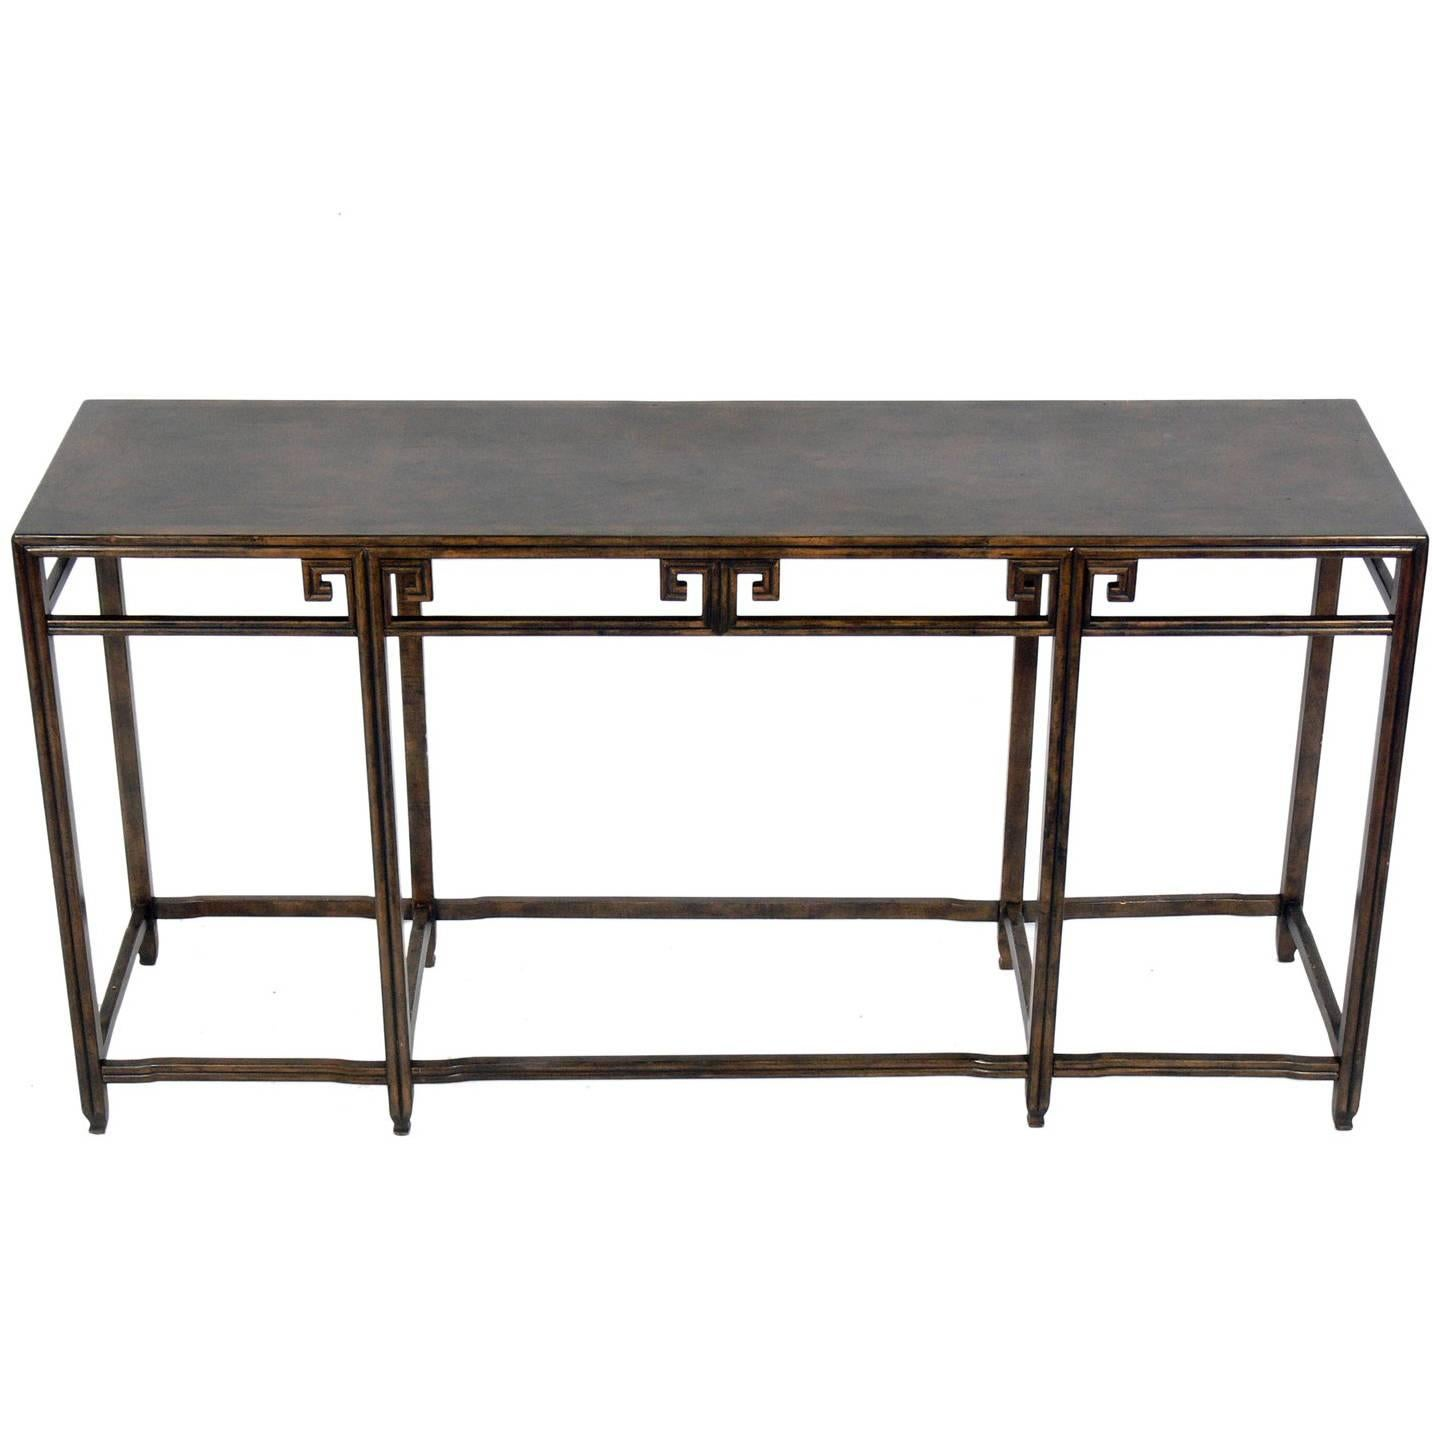 Asian Influenced Console Table By Baker